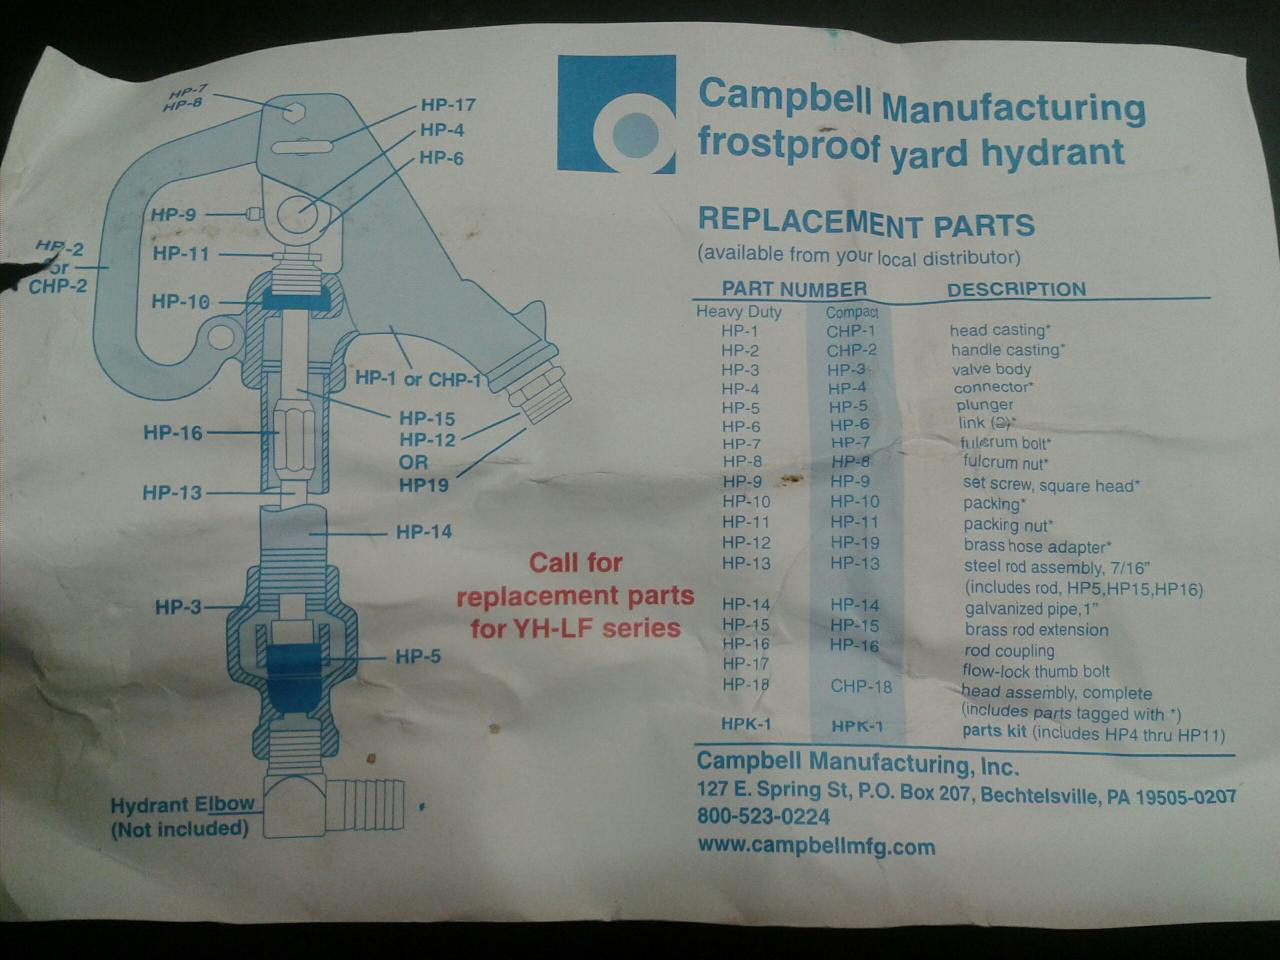 Campbell Yard Hydrant Ridgid Forum Plumbing Woodworking And Power Tools